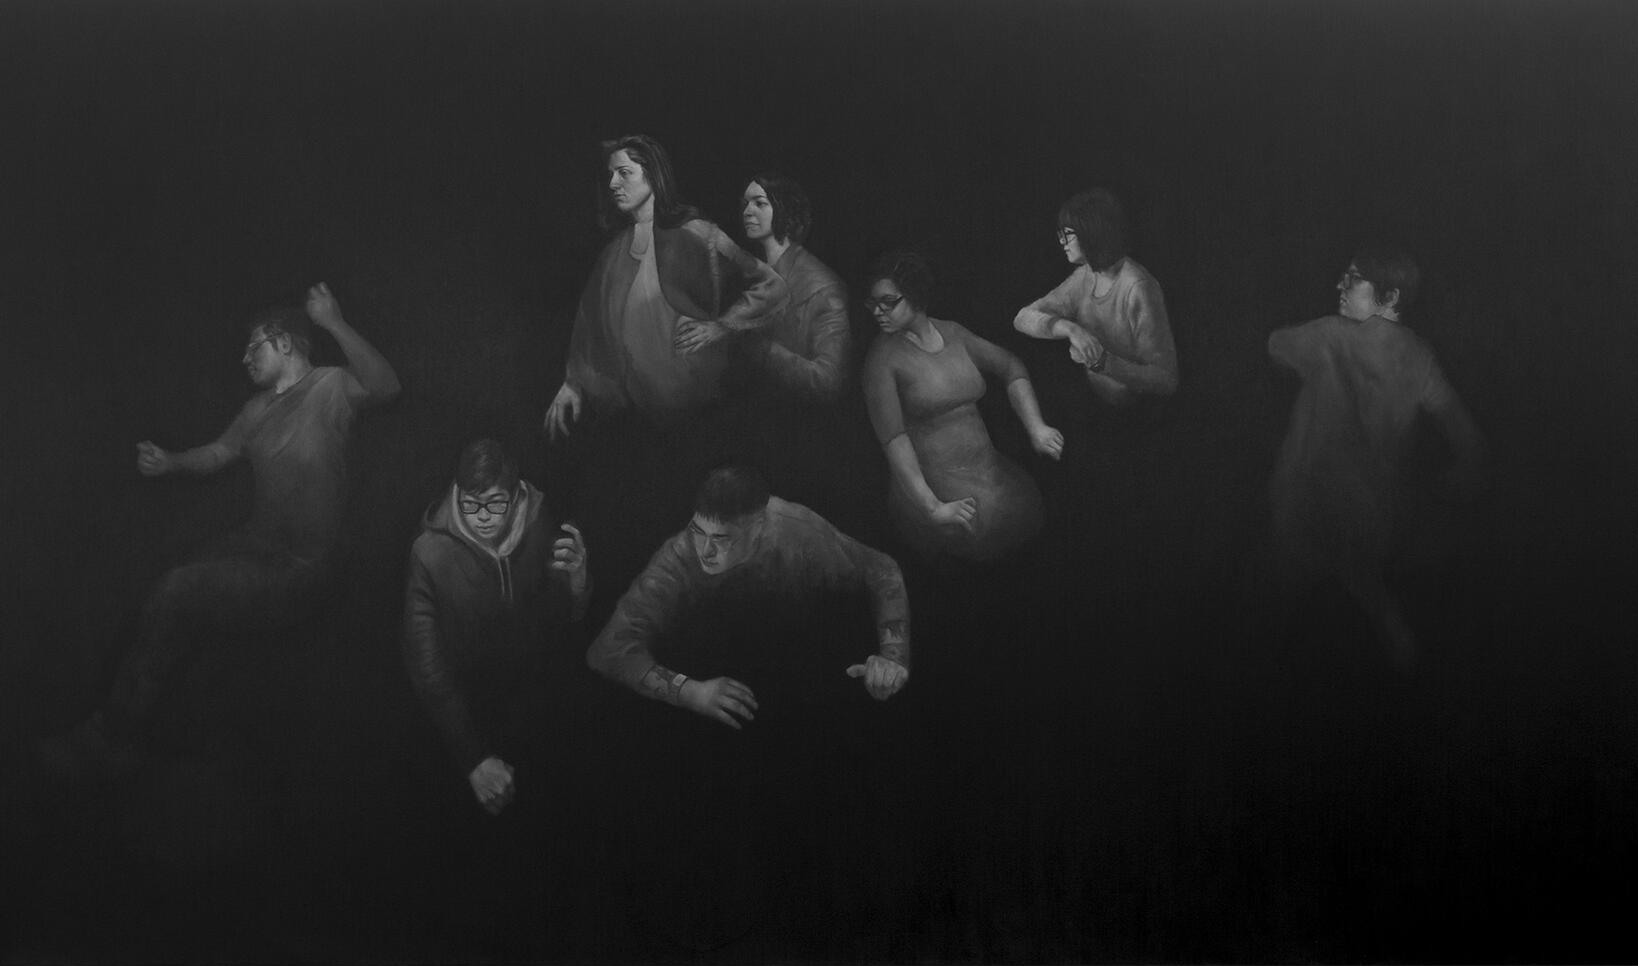 Oil on canvas painting of immigrants in the dark ; Jonathan Aller